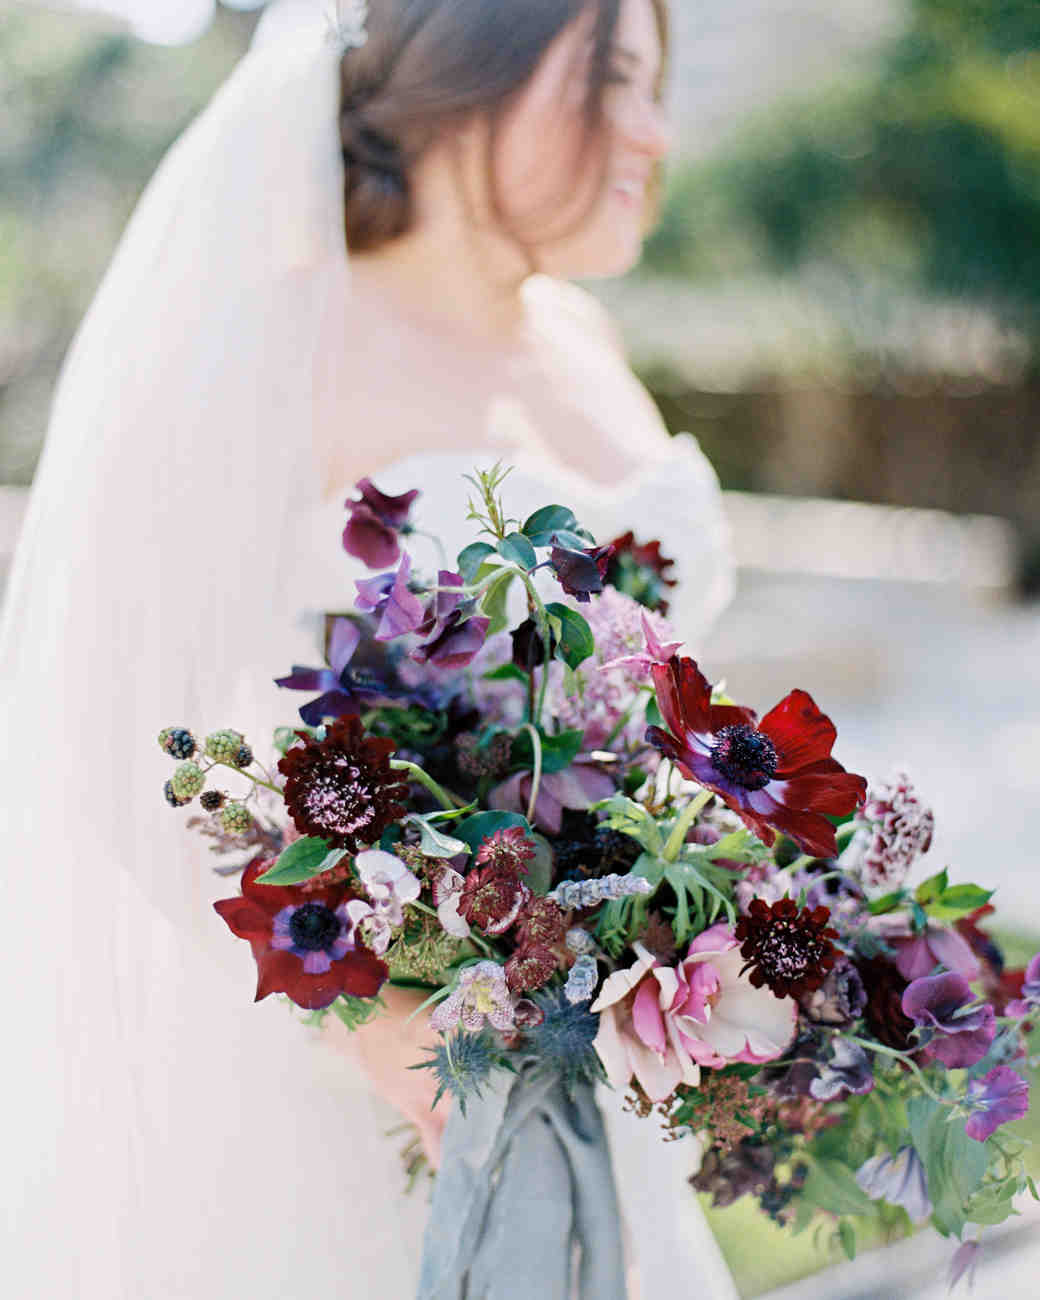 Winter Weddings: 52 Gorgeous Winter Wedding Bouquets